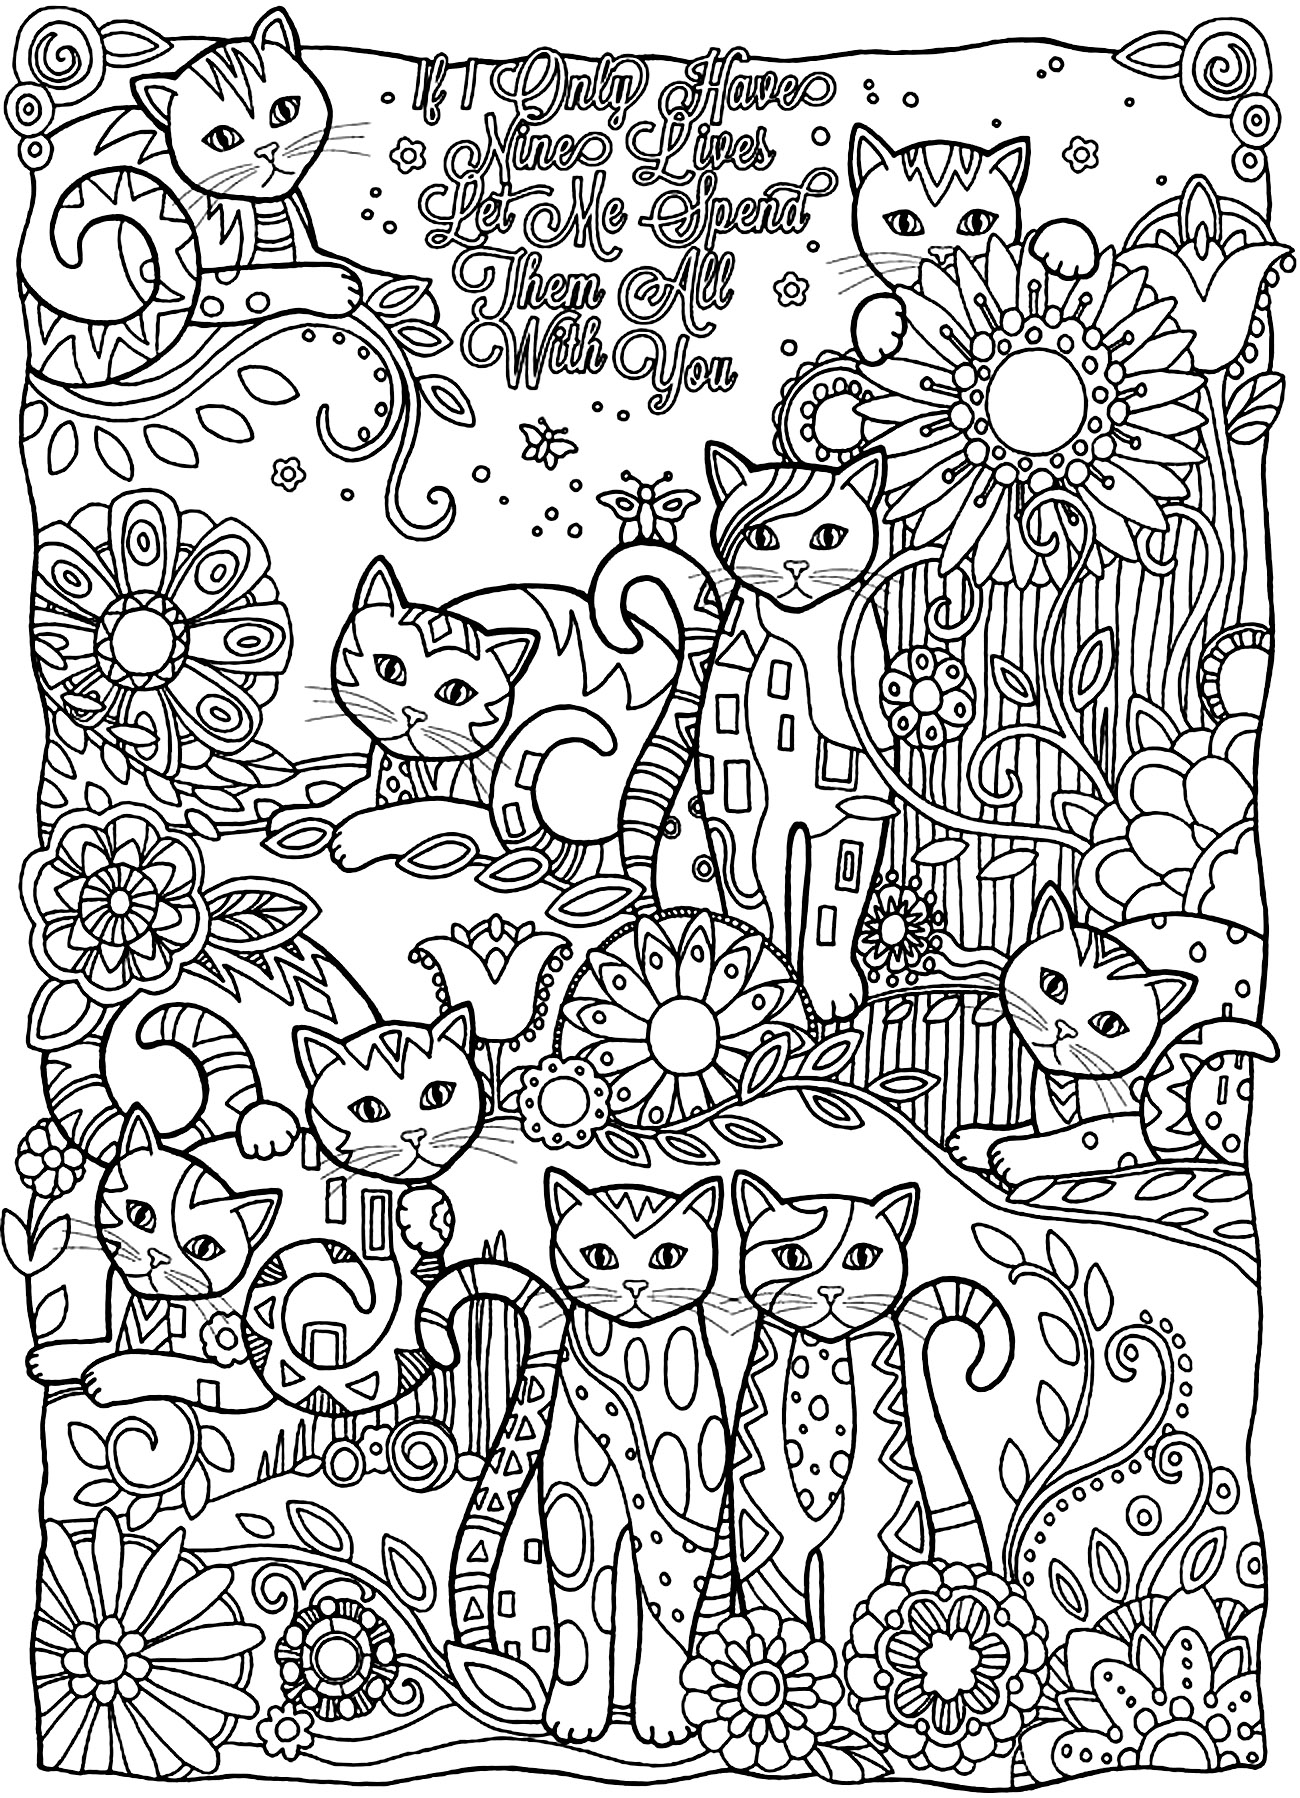 get free high quality hd wallpapers psychedelic coloring pages for adults - Psychedelic Coloring Pages For Adults